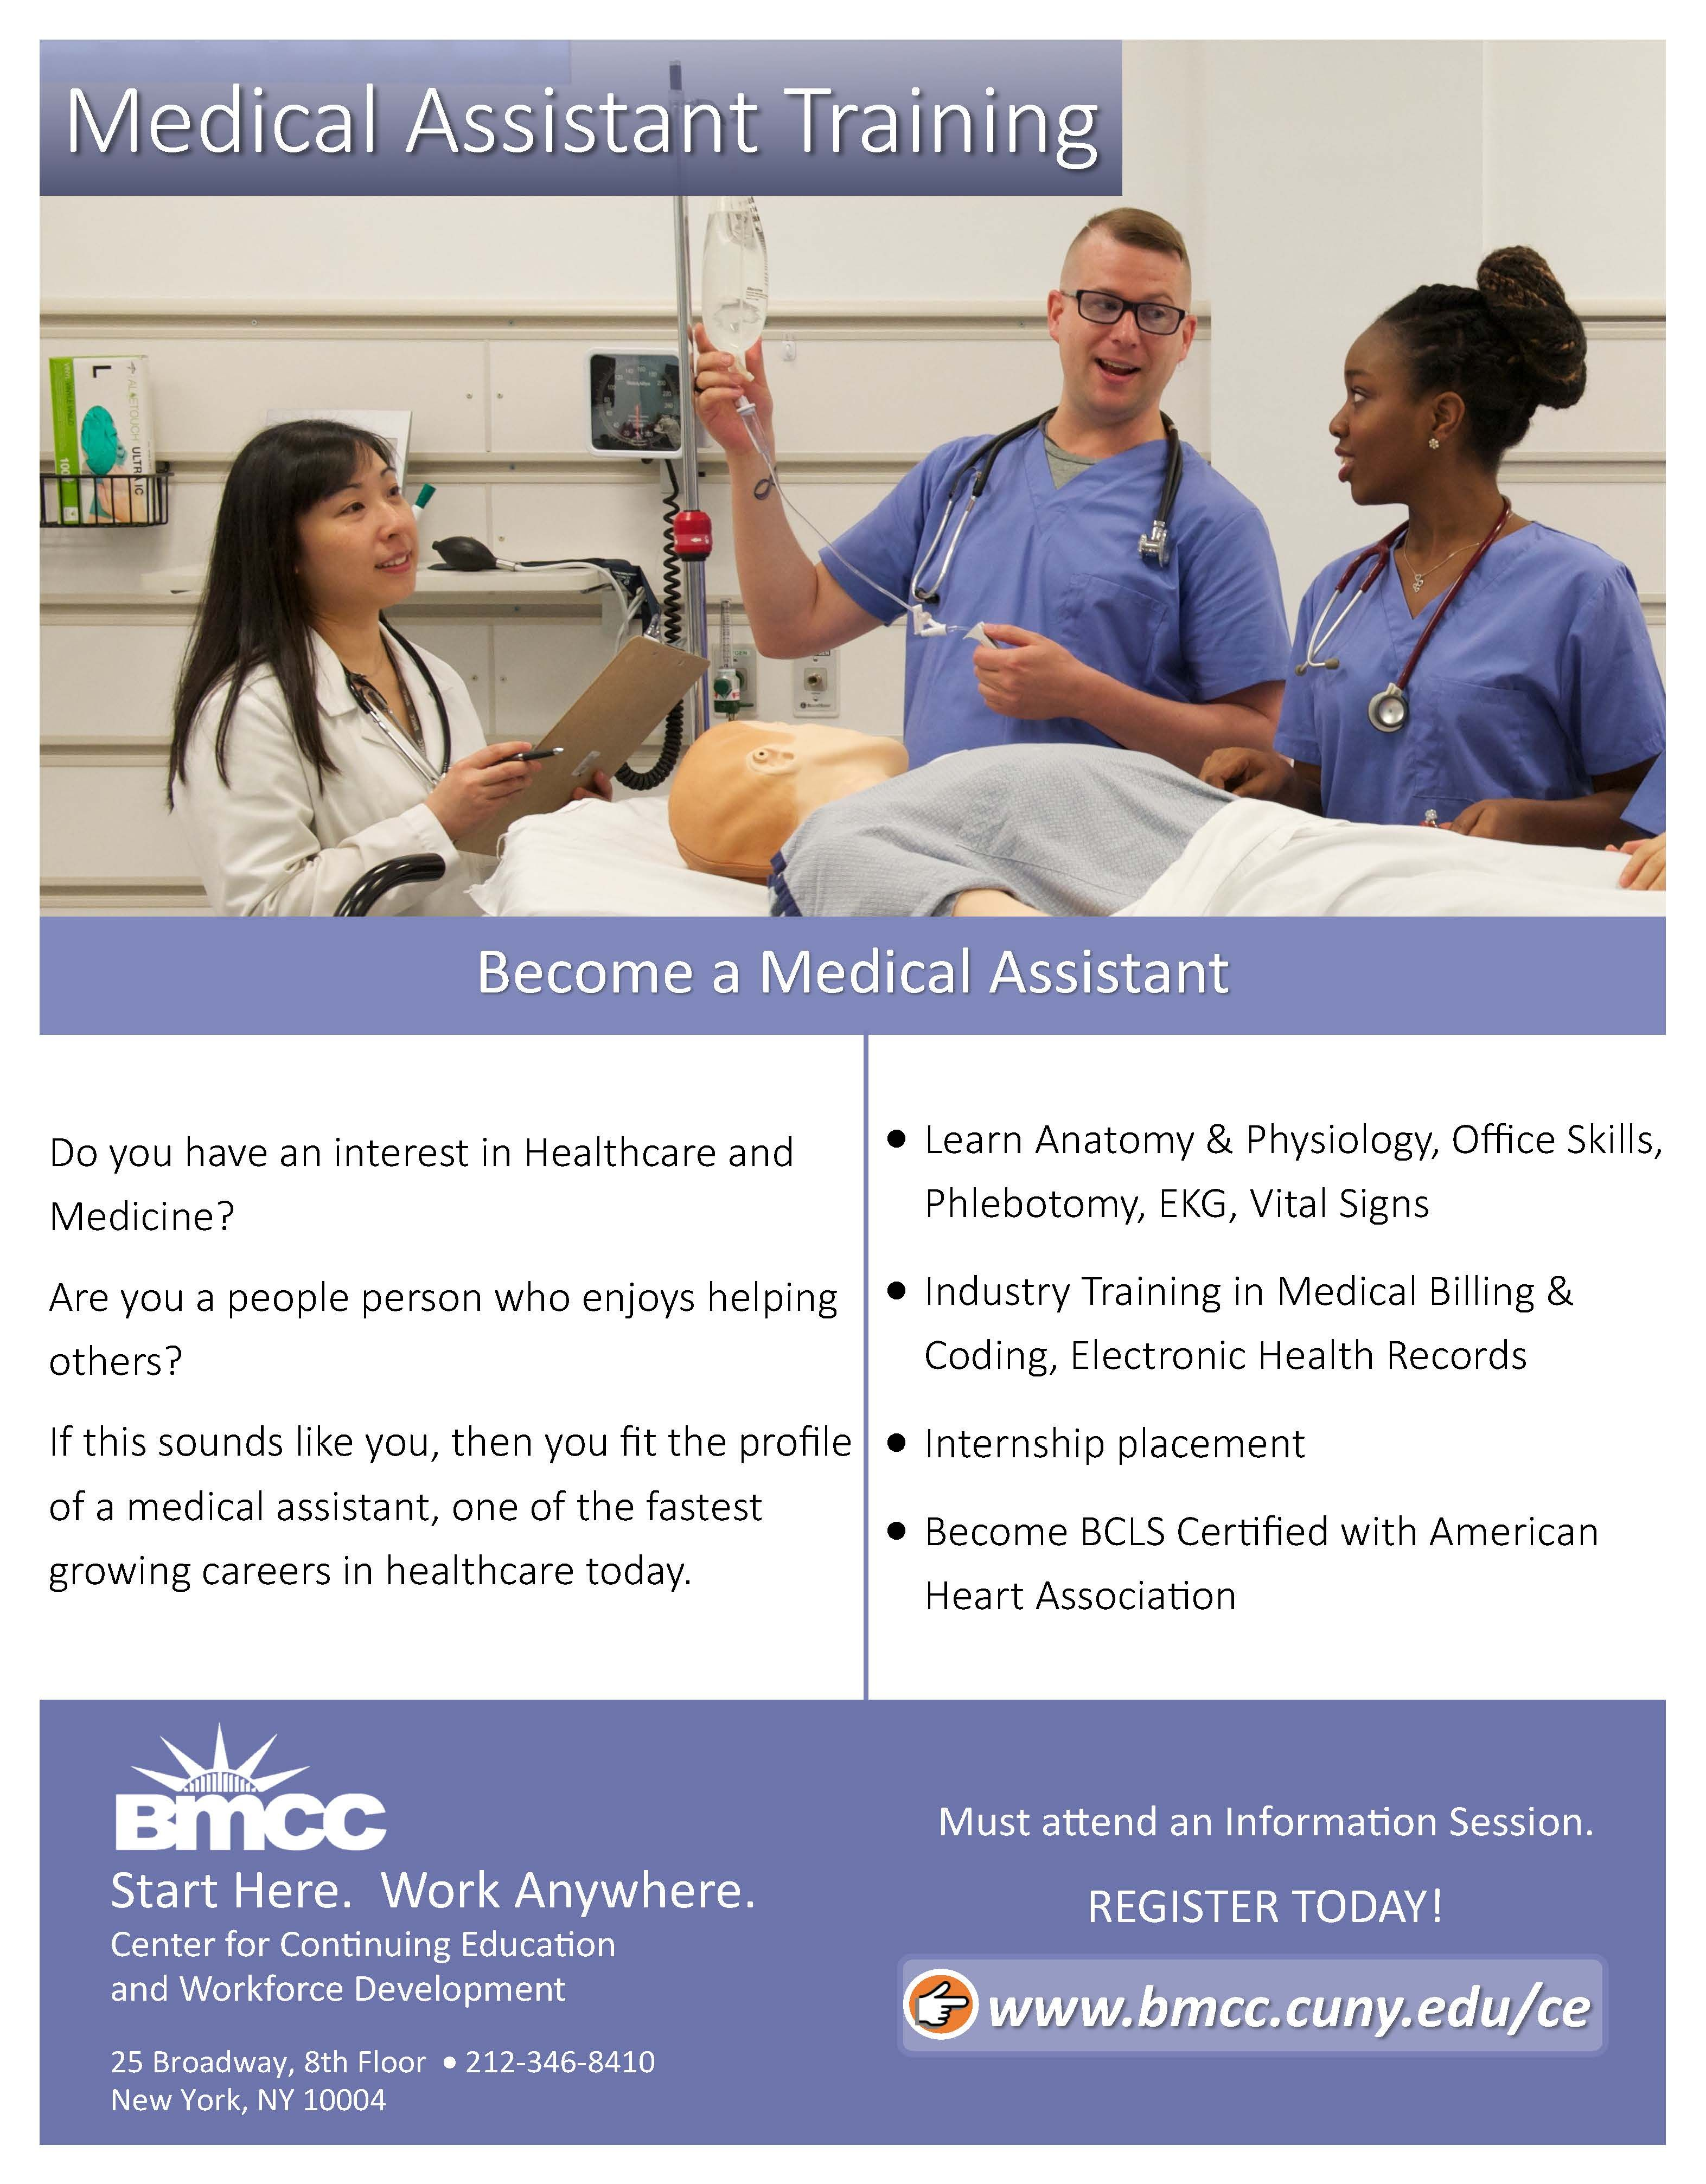 Our Medical Assistant Program Will Prepare Students To Handle A